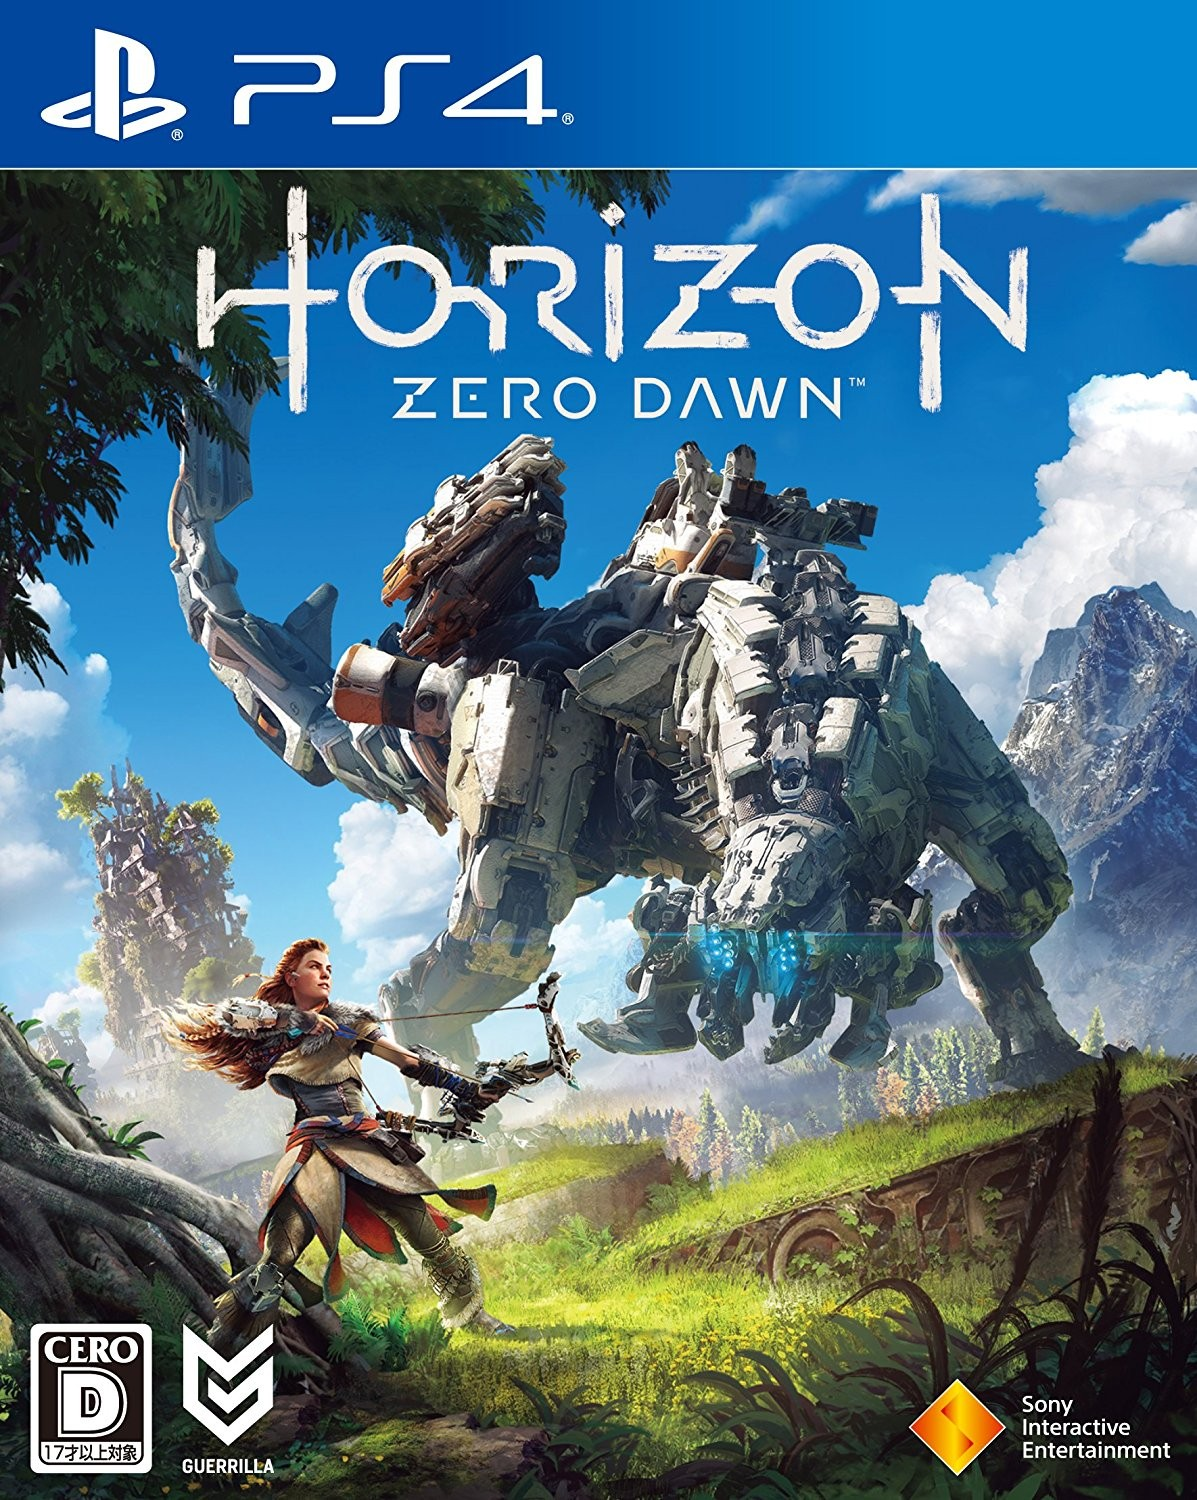 Horizon Zero Dawn 地平线:零之曙光